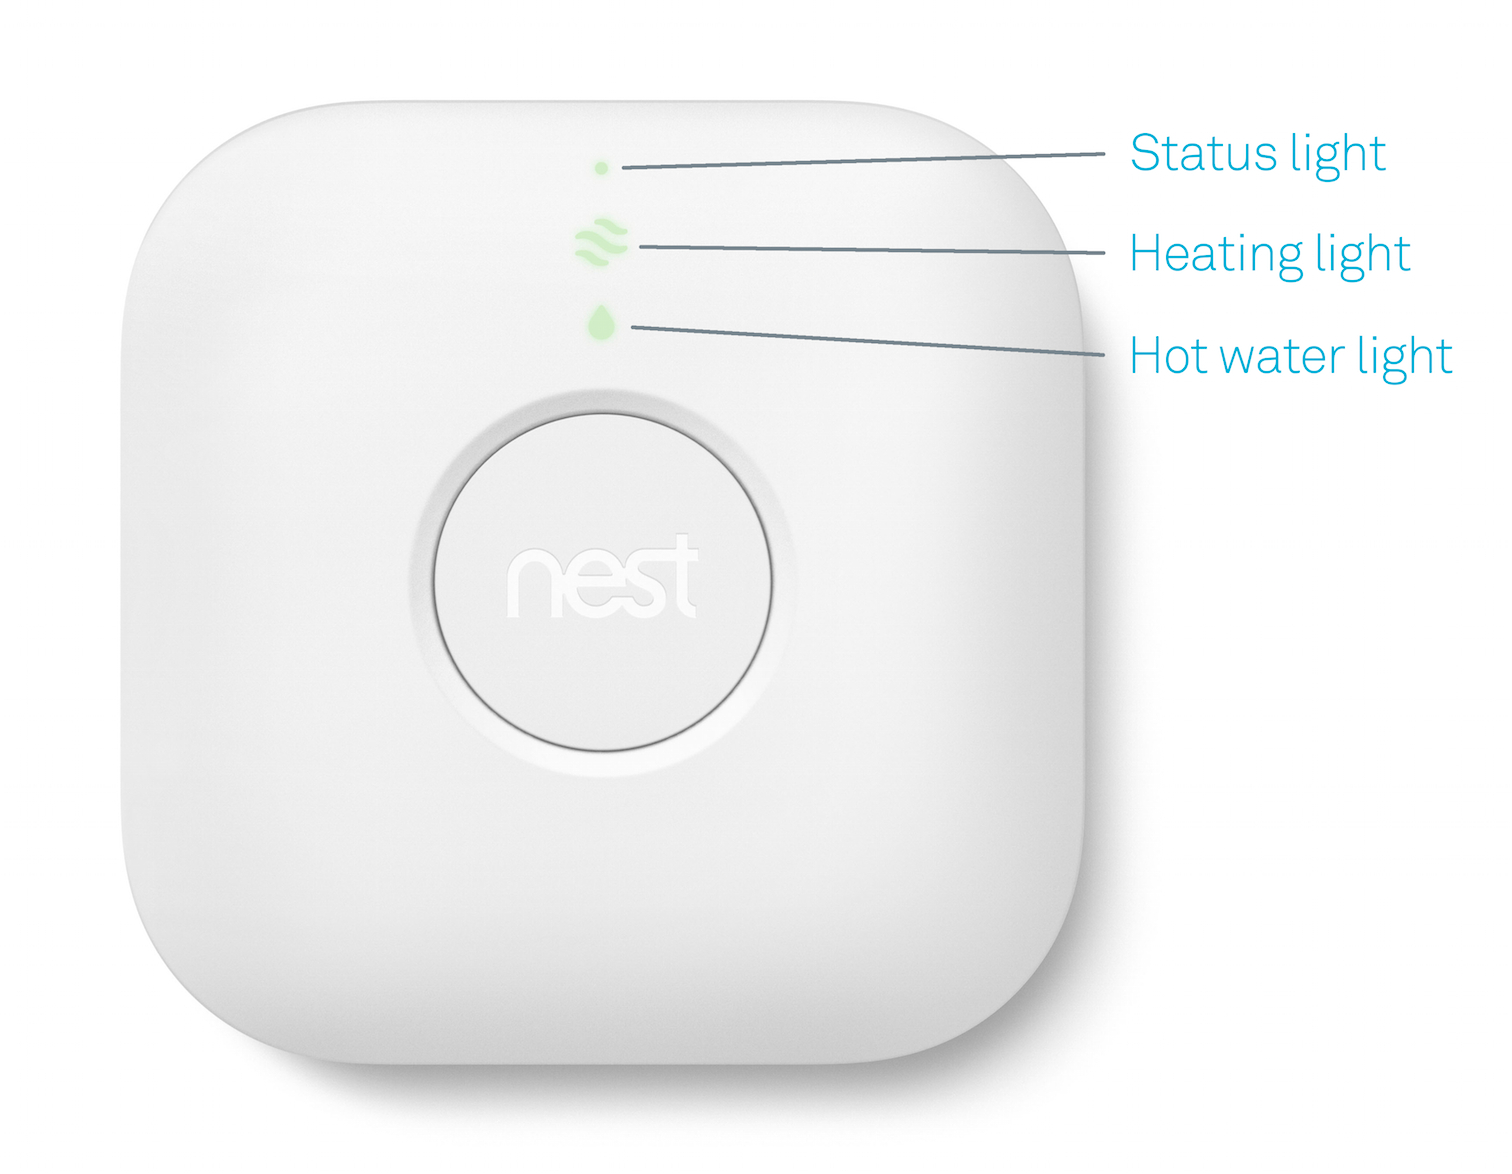 Learn About The Lights On Heat Link And What They Mean - Wiring Diagram For Nest Heat Link